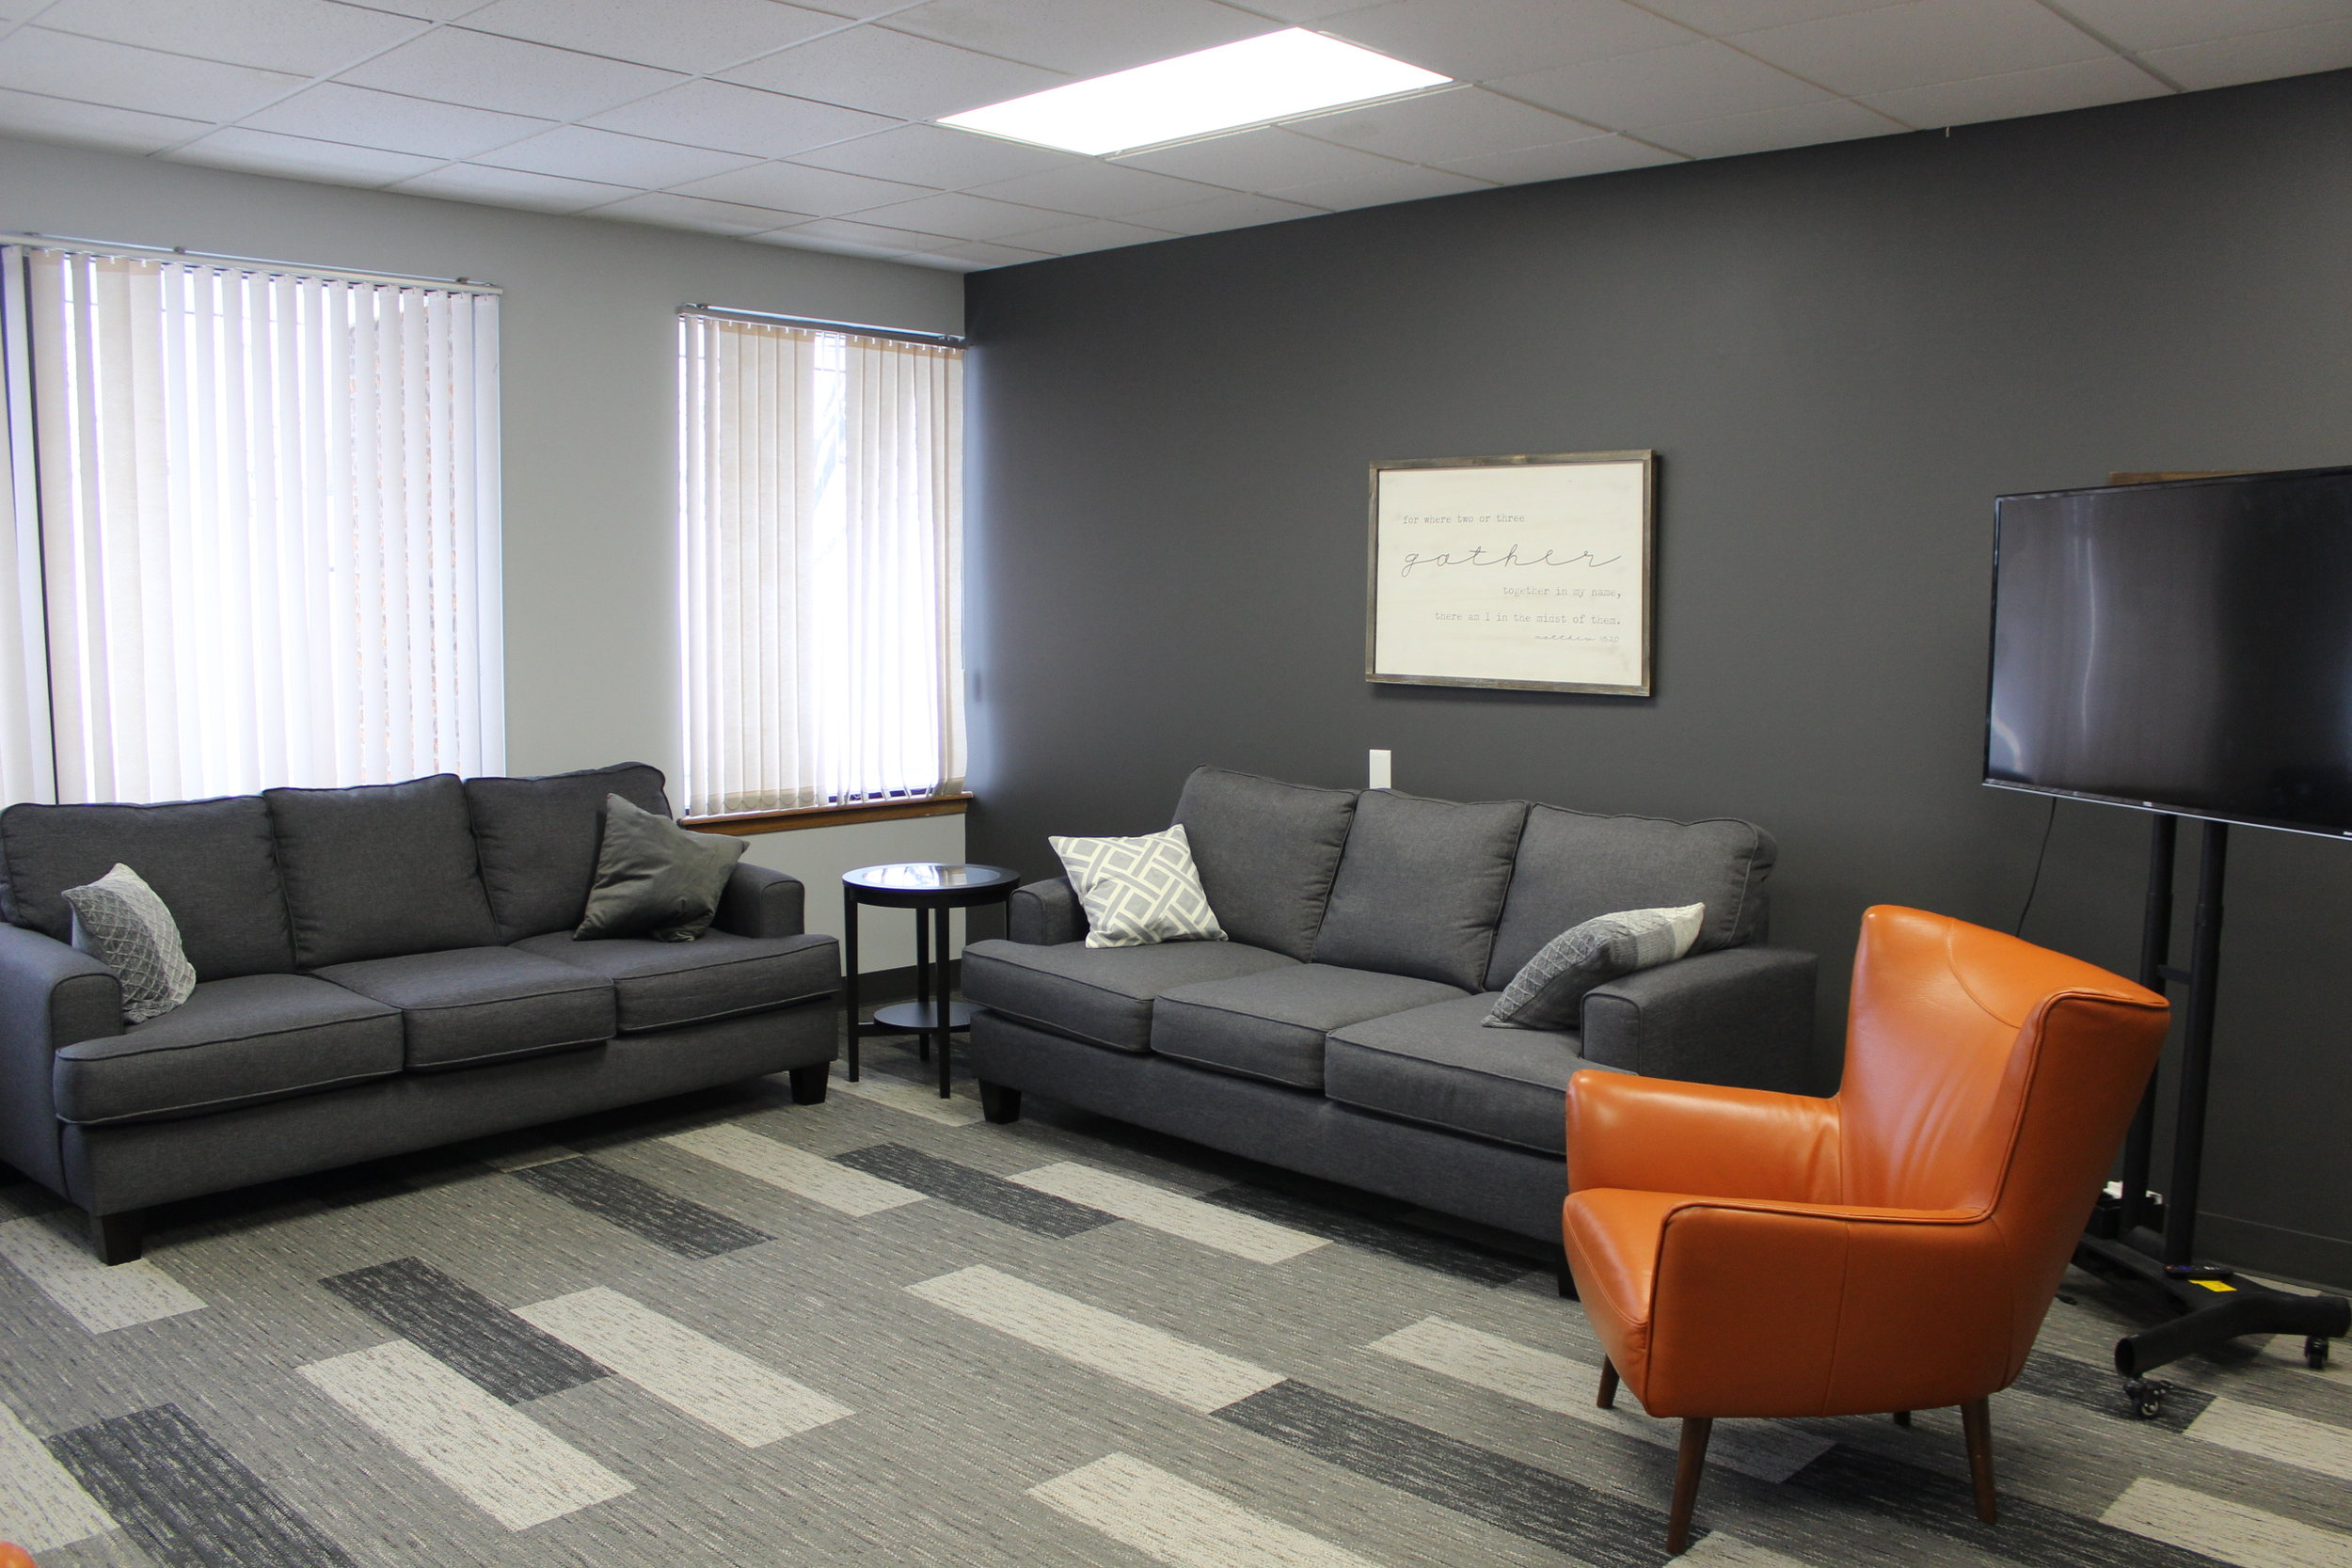 ROOM TWO - Living room like setting with comfortable couches and chairs, presentation TV, and whiteboard.Great for: meetings, classes, study groups.Accommodates up to 20 peopleCost: $20 per hour